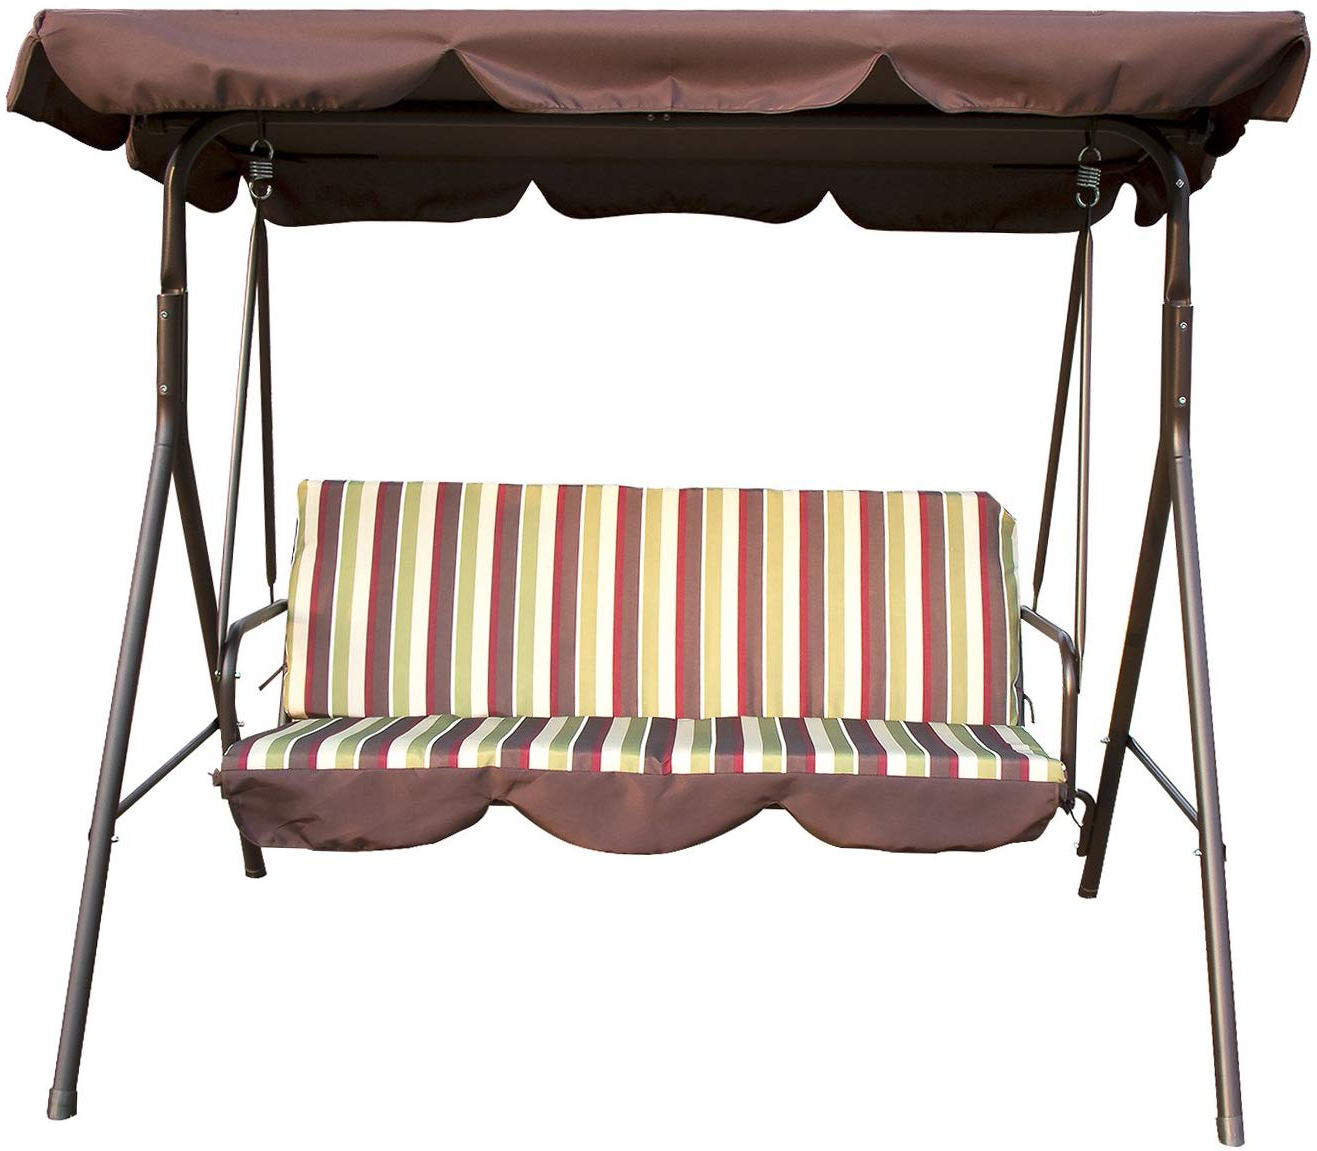 2019 Sliverylake Outdoor Patio Swing Chair 3 Person Porch Cushion With Stand Glider Hammock Bench With Canopy Seating Backyard Furniture Steel Frame Pertaining To Patio Glider Hammock Porch Swings (View 25 of 30)